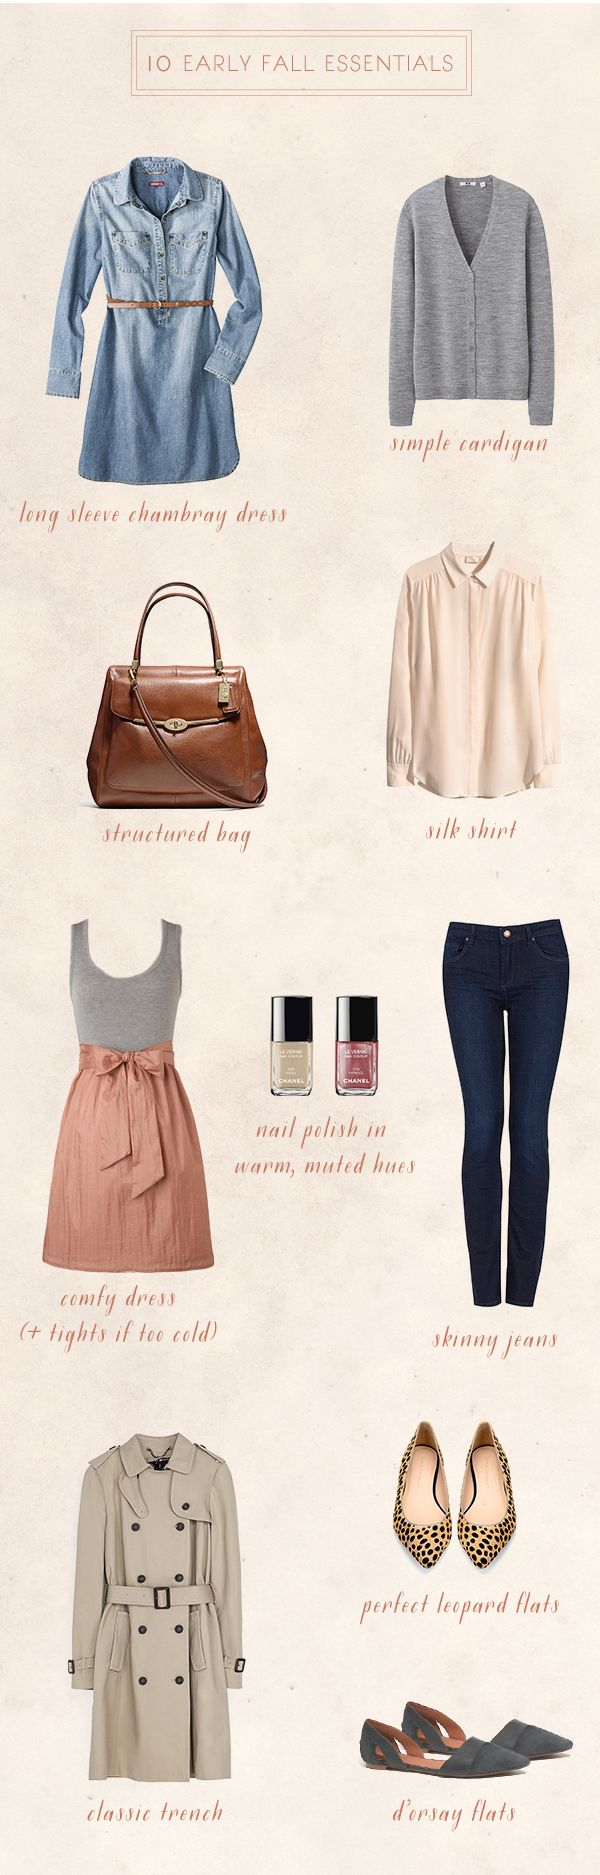 10 Early Fall Essentials - Oh the lovely things